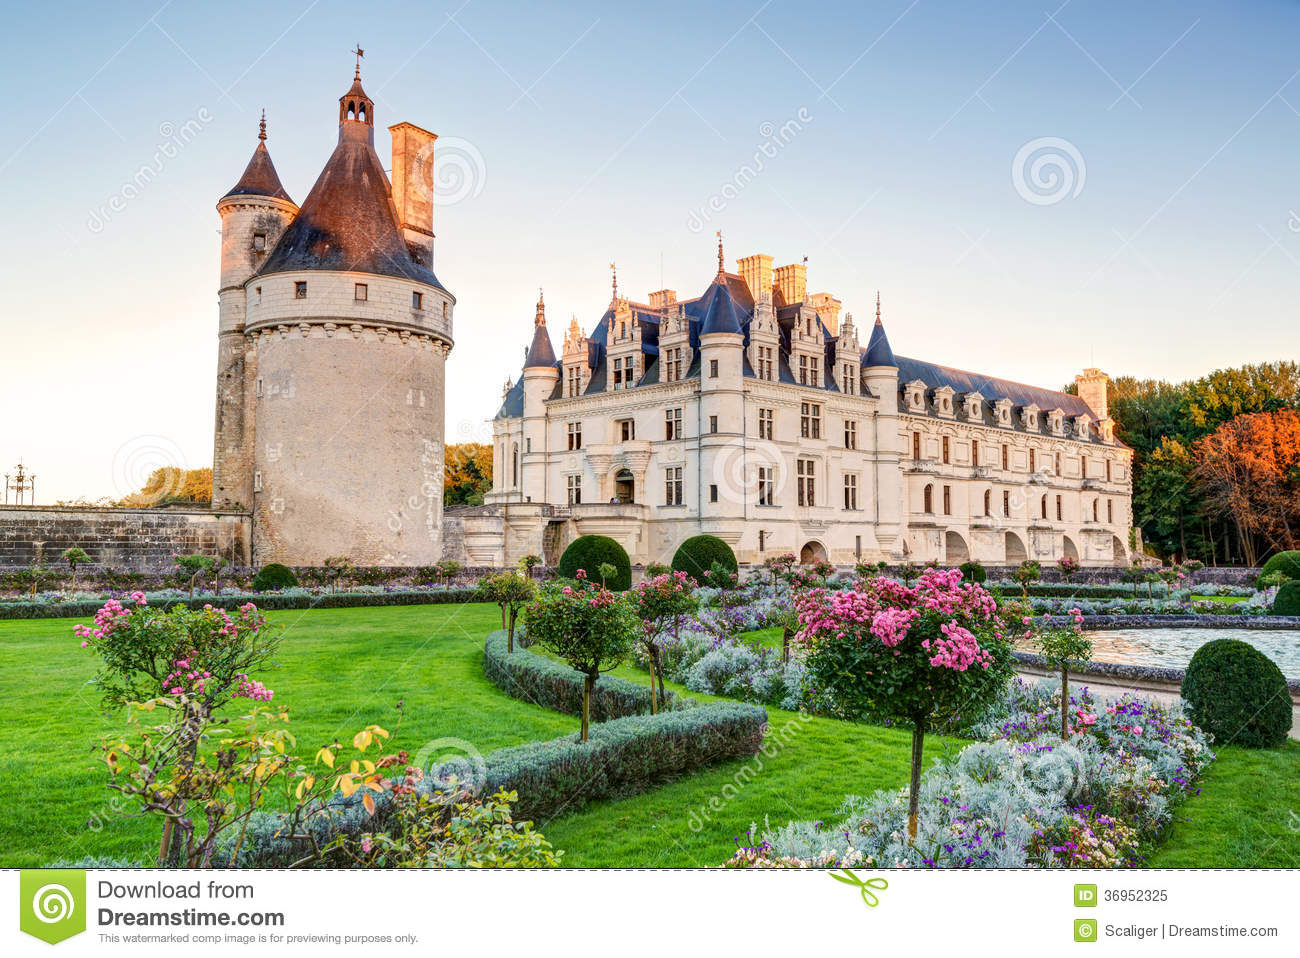 le ch teau de chenonceau au coucher du soleil france photo libre de droits image 36952325. Black Bedroom Furniture Sets. Home Design Ideas